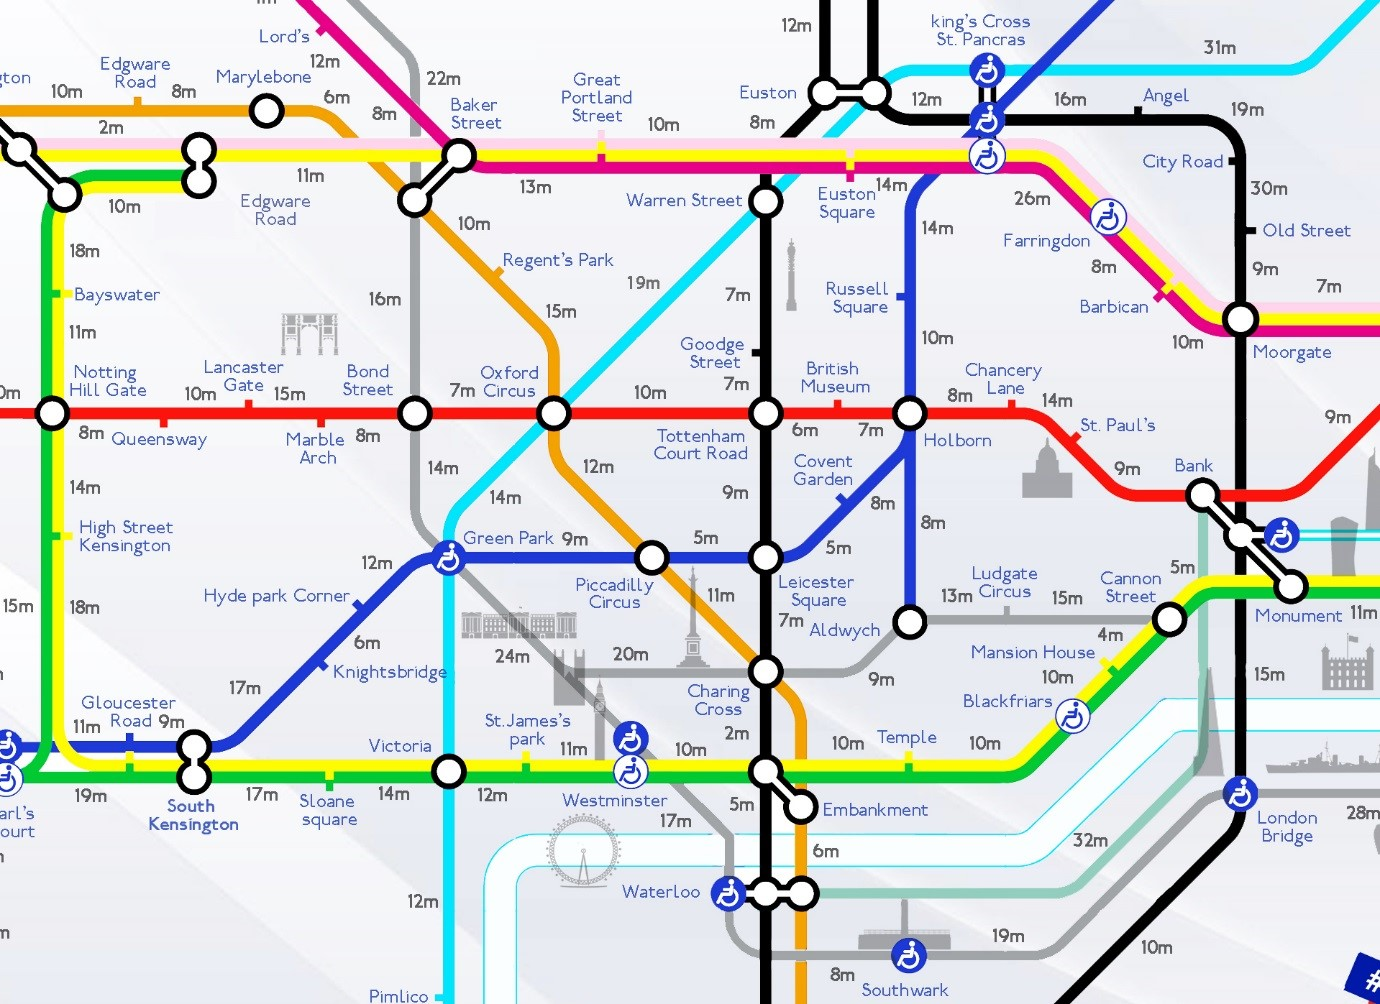 london map of the underground train routes tube stations